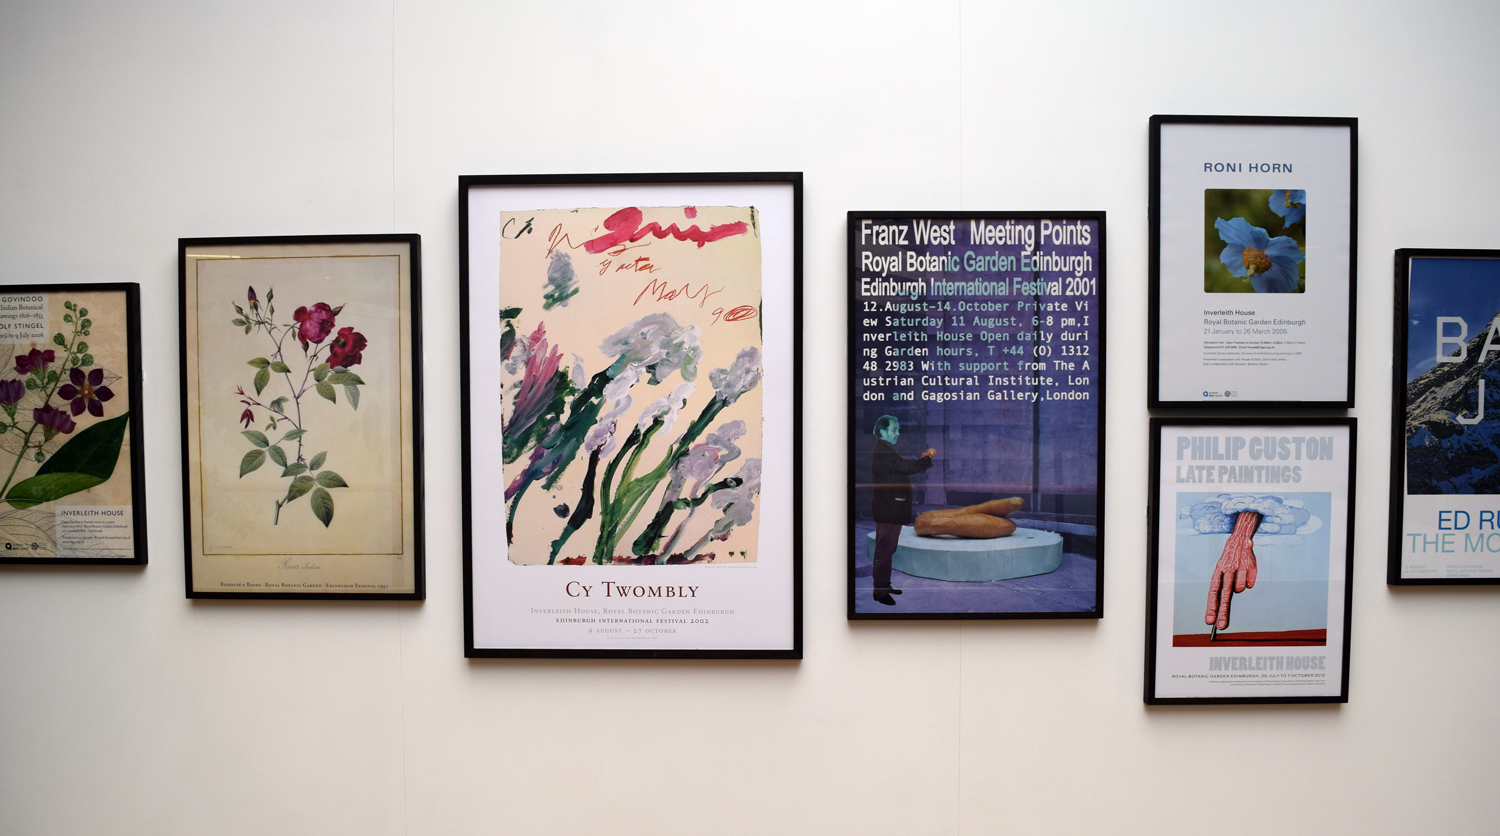 Inverleith House Poster Exhibition Begins 30th Anniversary